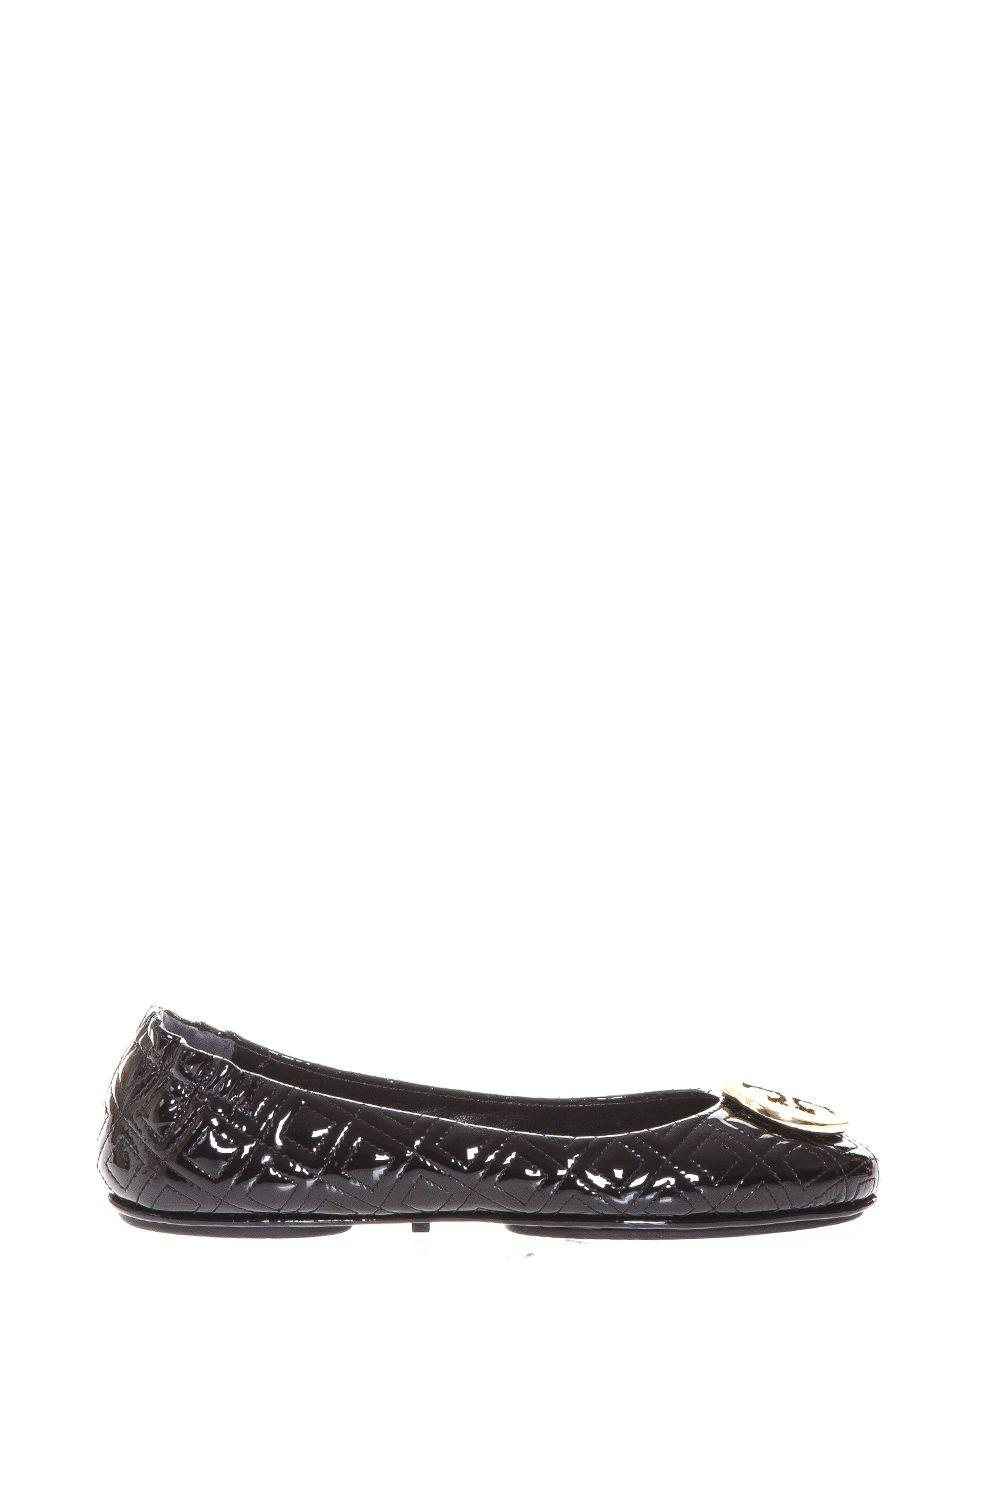 Tory Burch Minnie Travel Ballet Flat In Quilted Leather In Black-Gold